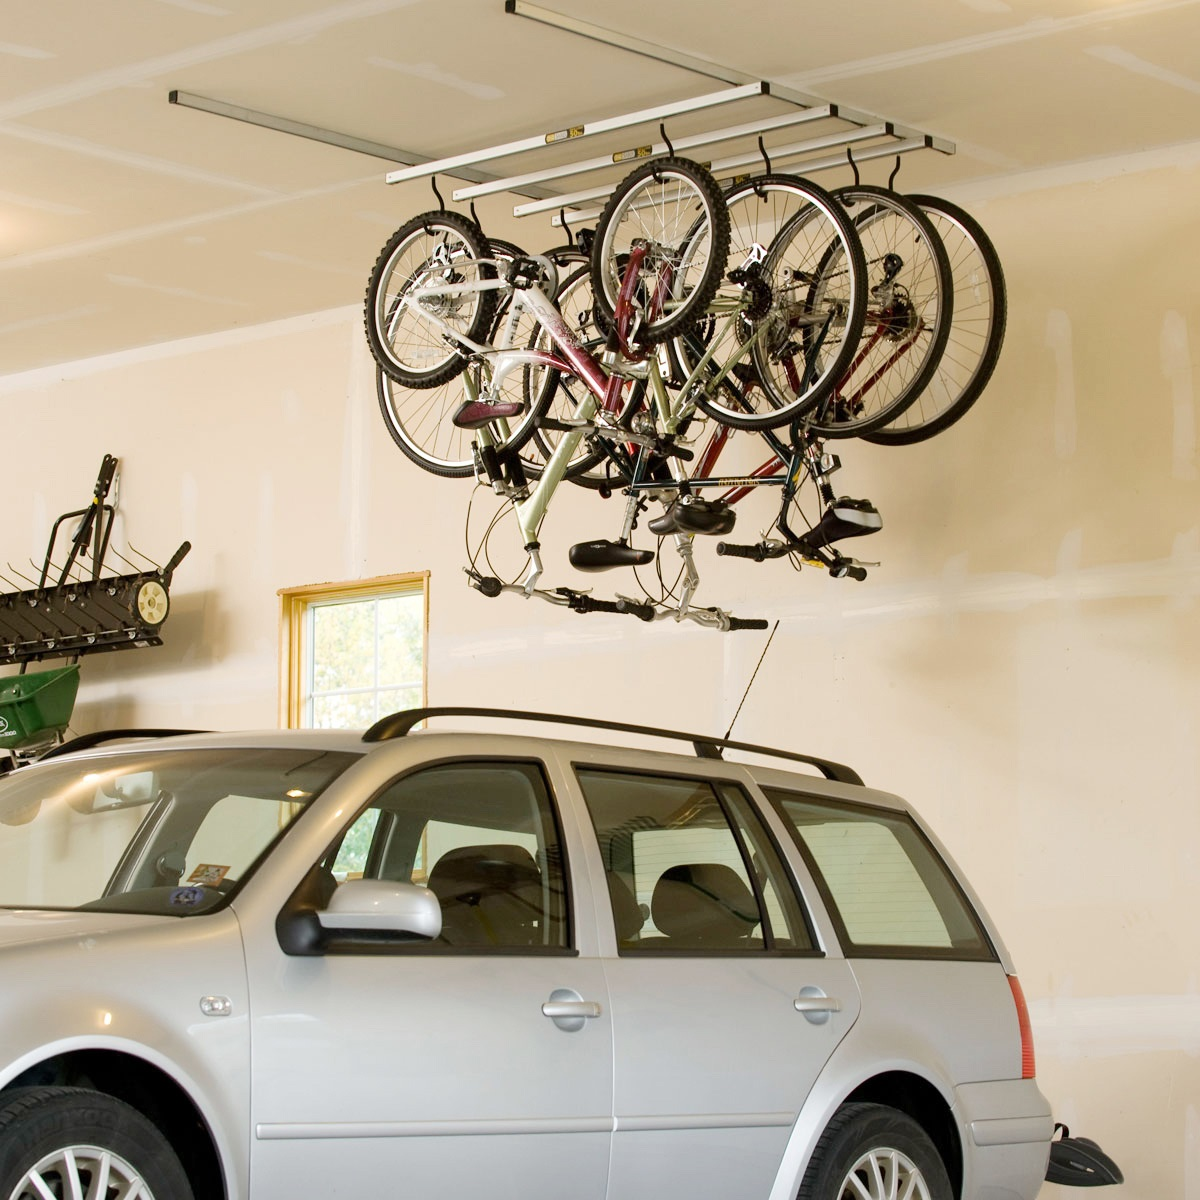 Saris Cycleglide 4 Bike Ceiling Storage System 56 Jpg